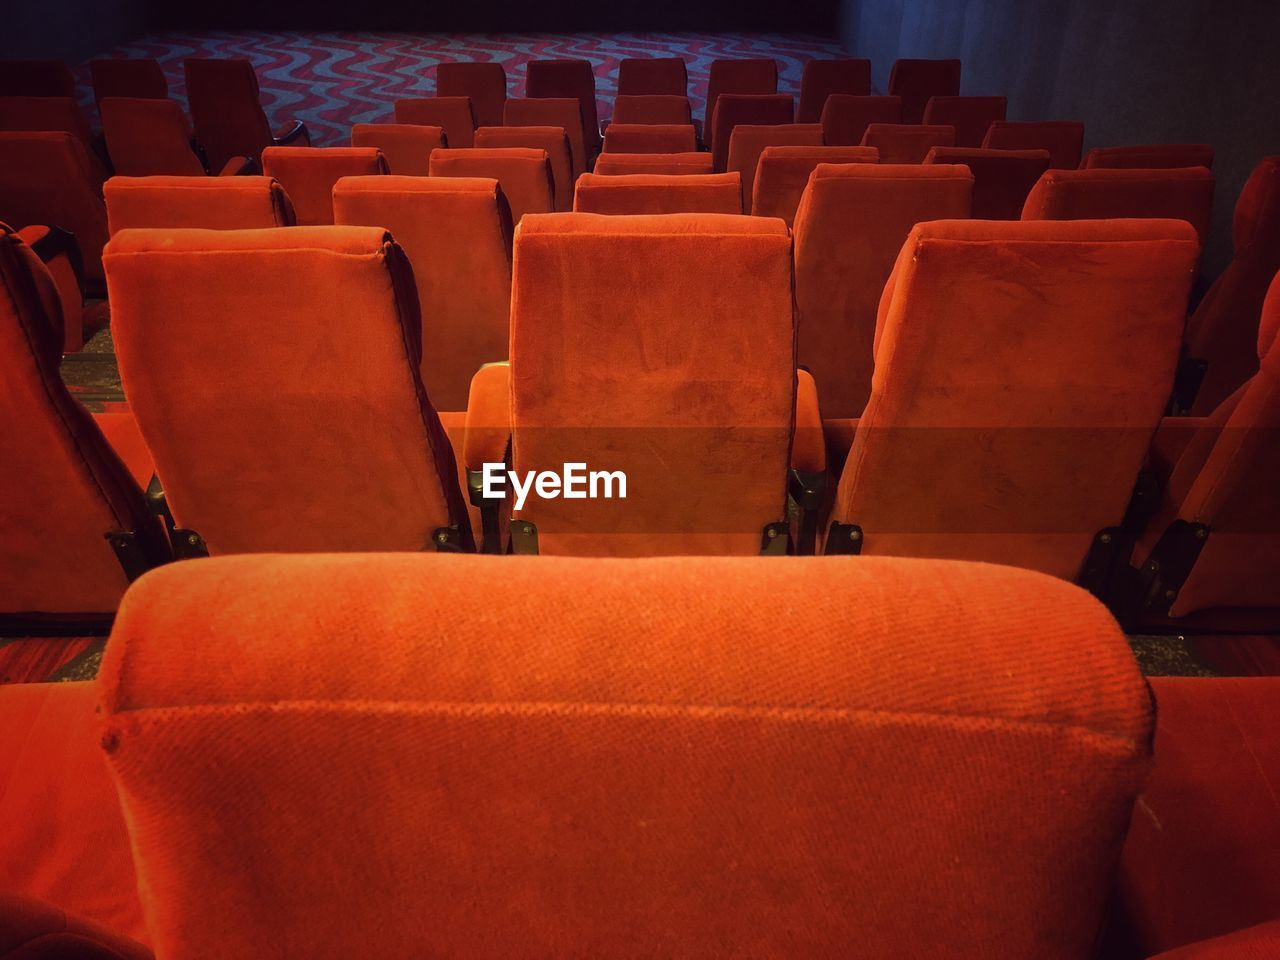 seat, in a row, chair, empty, movie theater, arts culture and entertainment, absence, indoors, repetition, no people, side by side, auditorium, arrangement, theater, order, film industry, red, large group of objects, stage theater